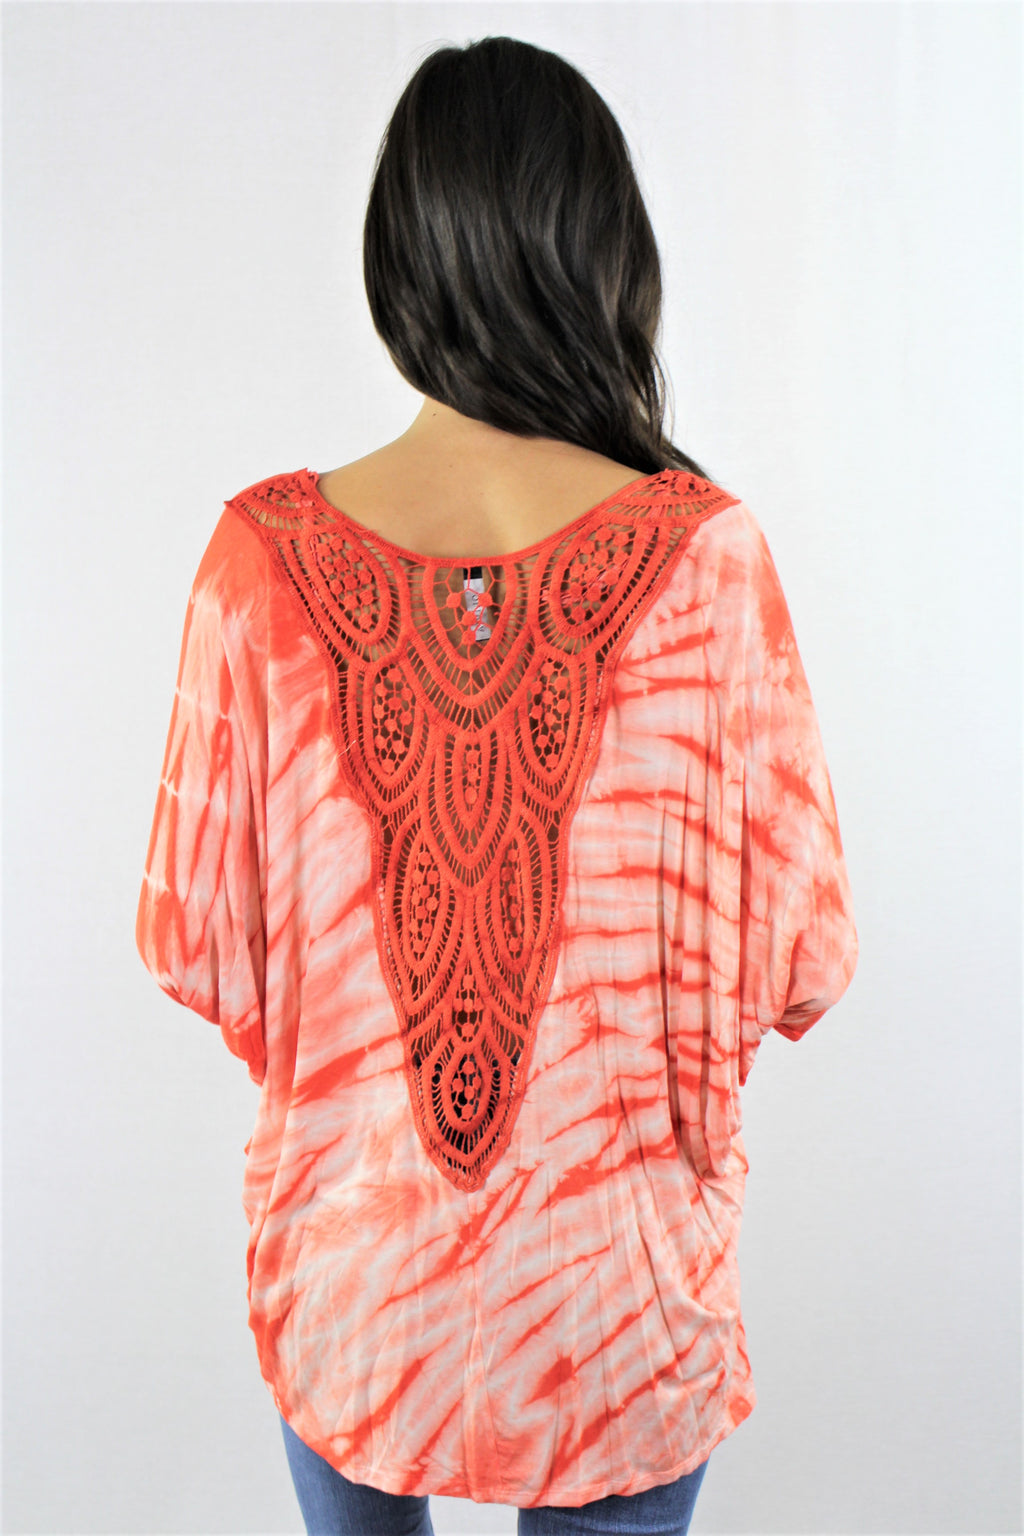 Women's V Neck Tie Dye Crochet Detail Top